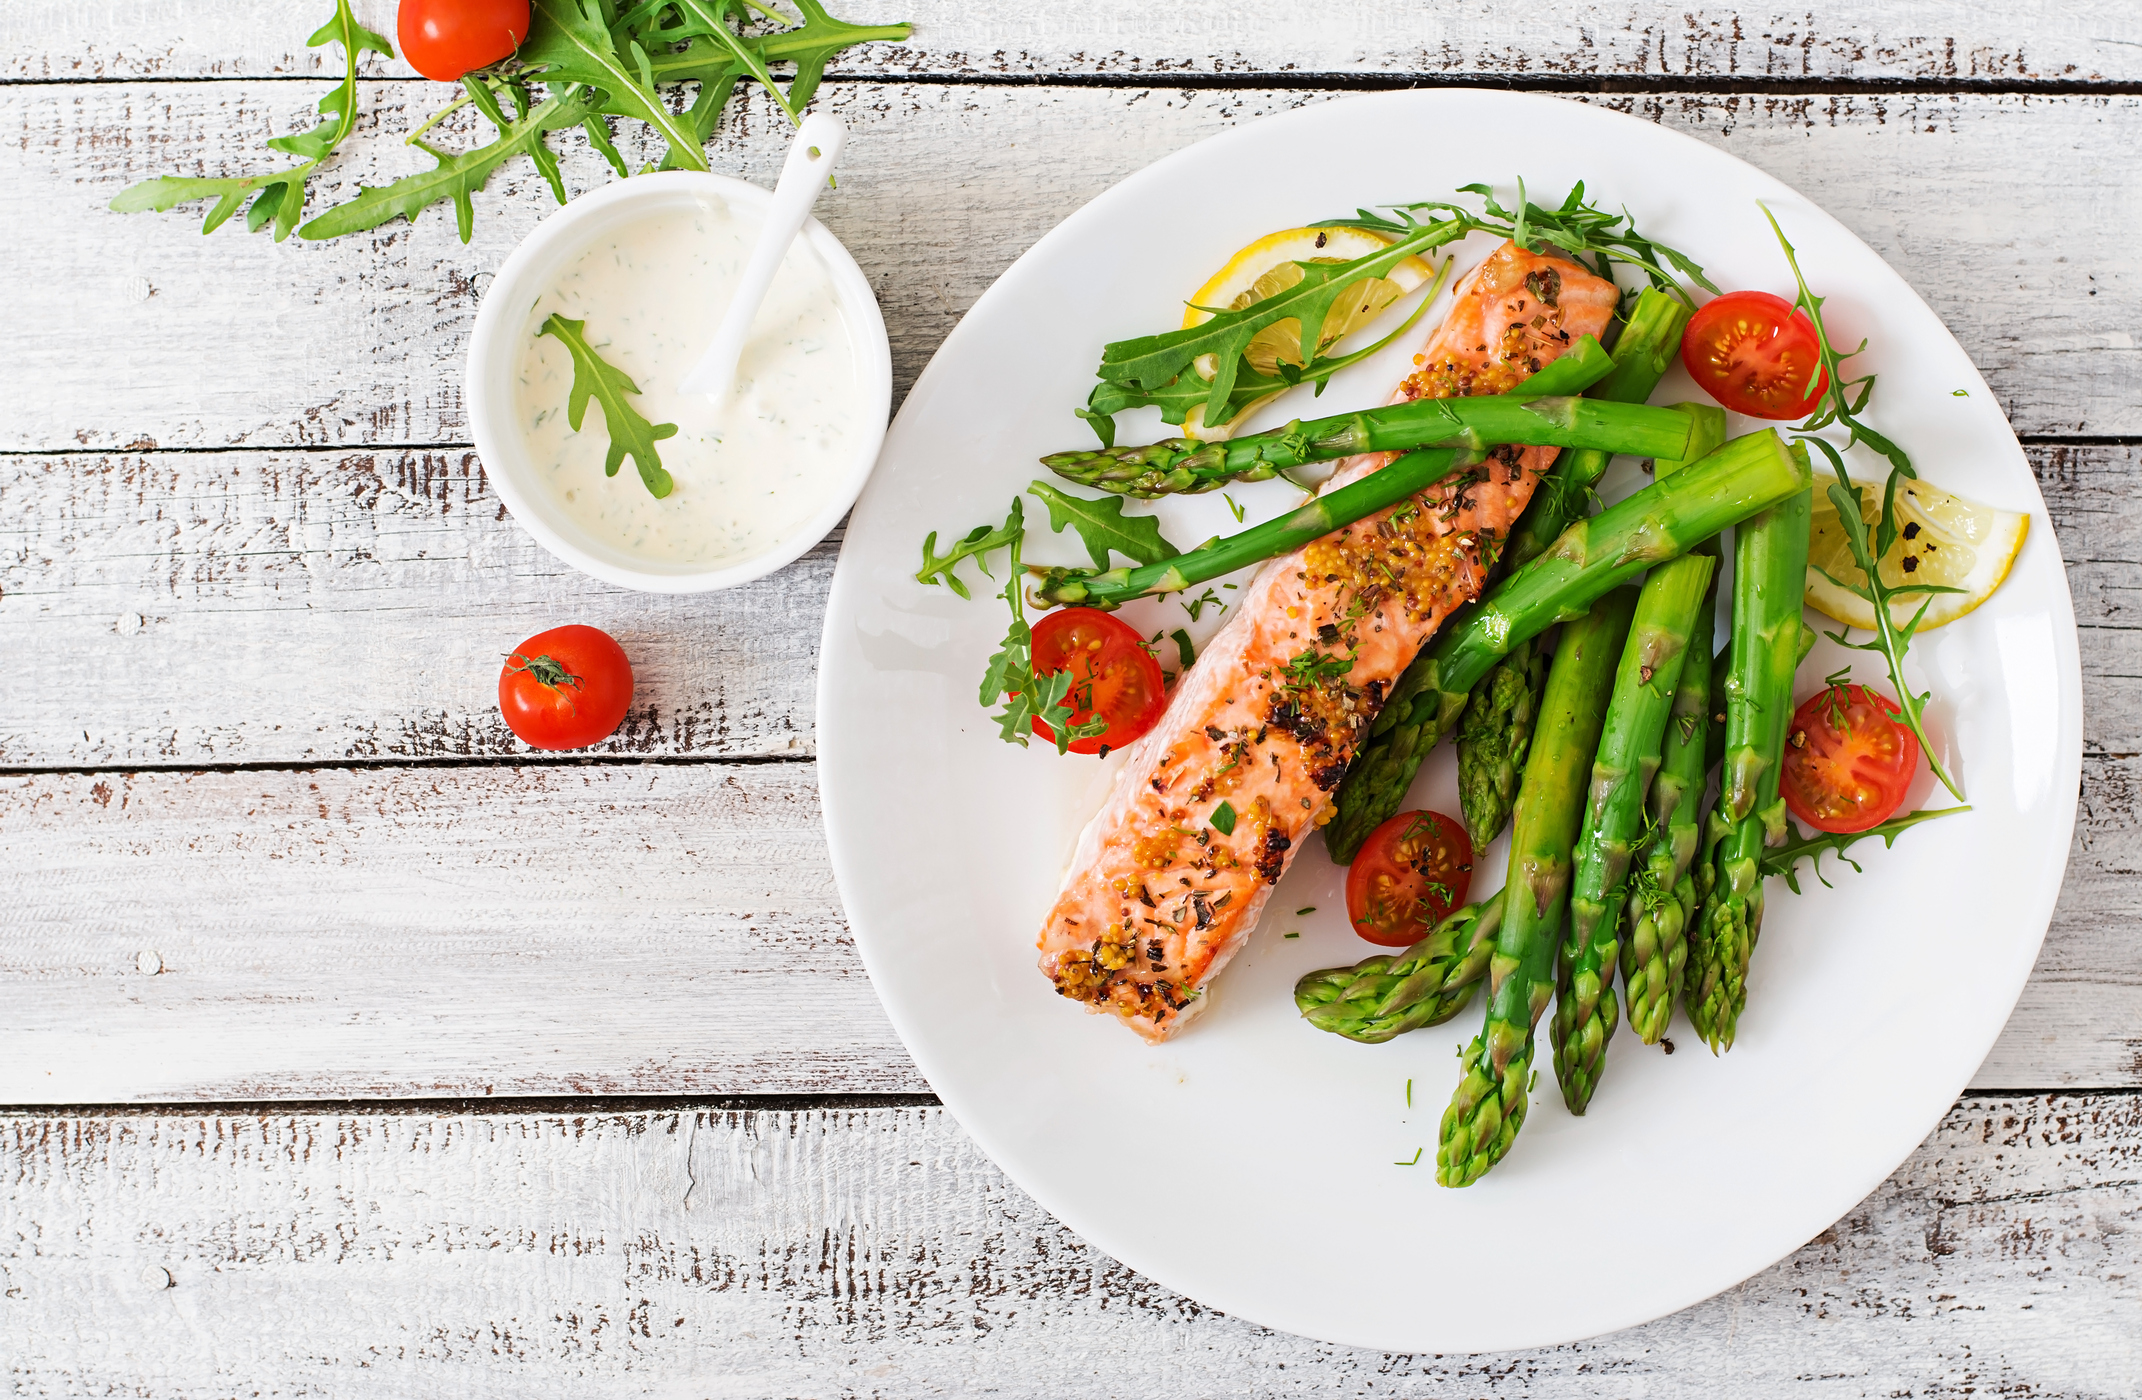 Struggling With Keto? Why Noom Might be Best for You